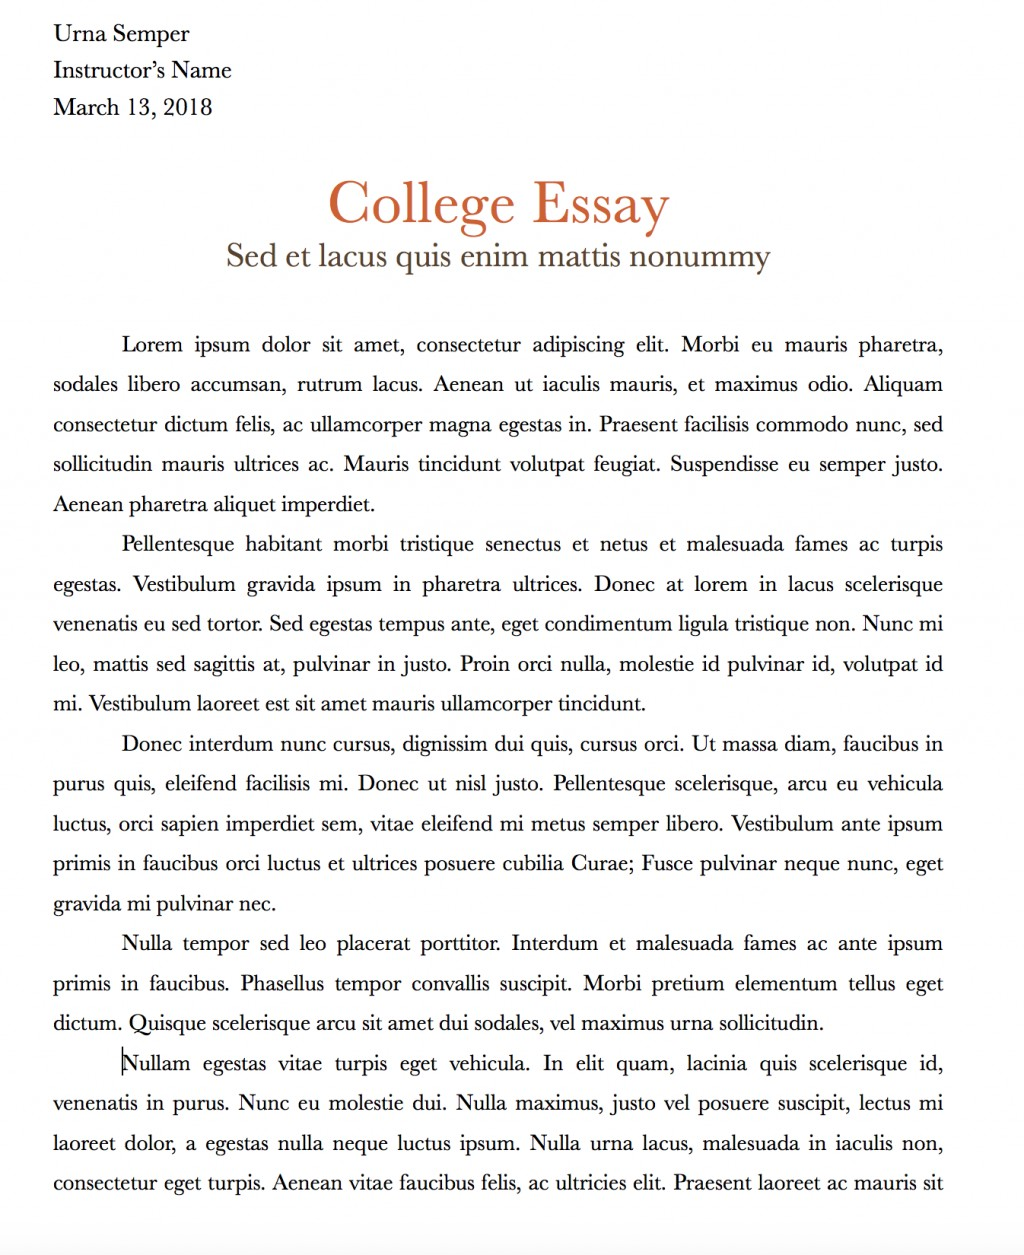 001 What Makes You Unique Essay Example How To Write An Interesting And Captivating College Application Ctwrvkoshcimzkxyhyl8 With Parag Sensational Question Colorful Large